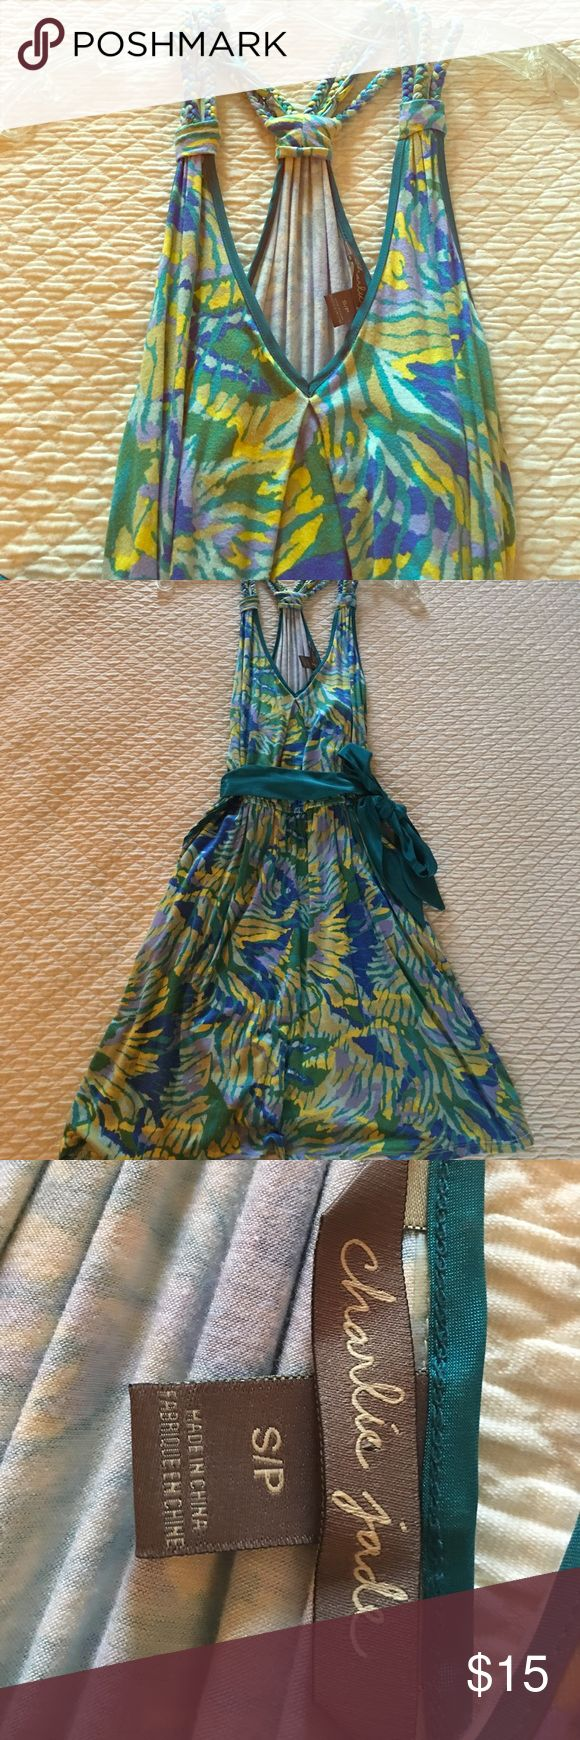 """Charlie Jade tropical print dress size small Ready for spring/summer in very good preowned condition Charlie Jade tank dress with braided straps and removeable tie at waist. Overall length from top of shoulder to bottom hem is 33"""" so hits above knee on me and I am 5'5"""". Size small, be sure to check out my closet! Charlie Jade  Dresses Mini"""